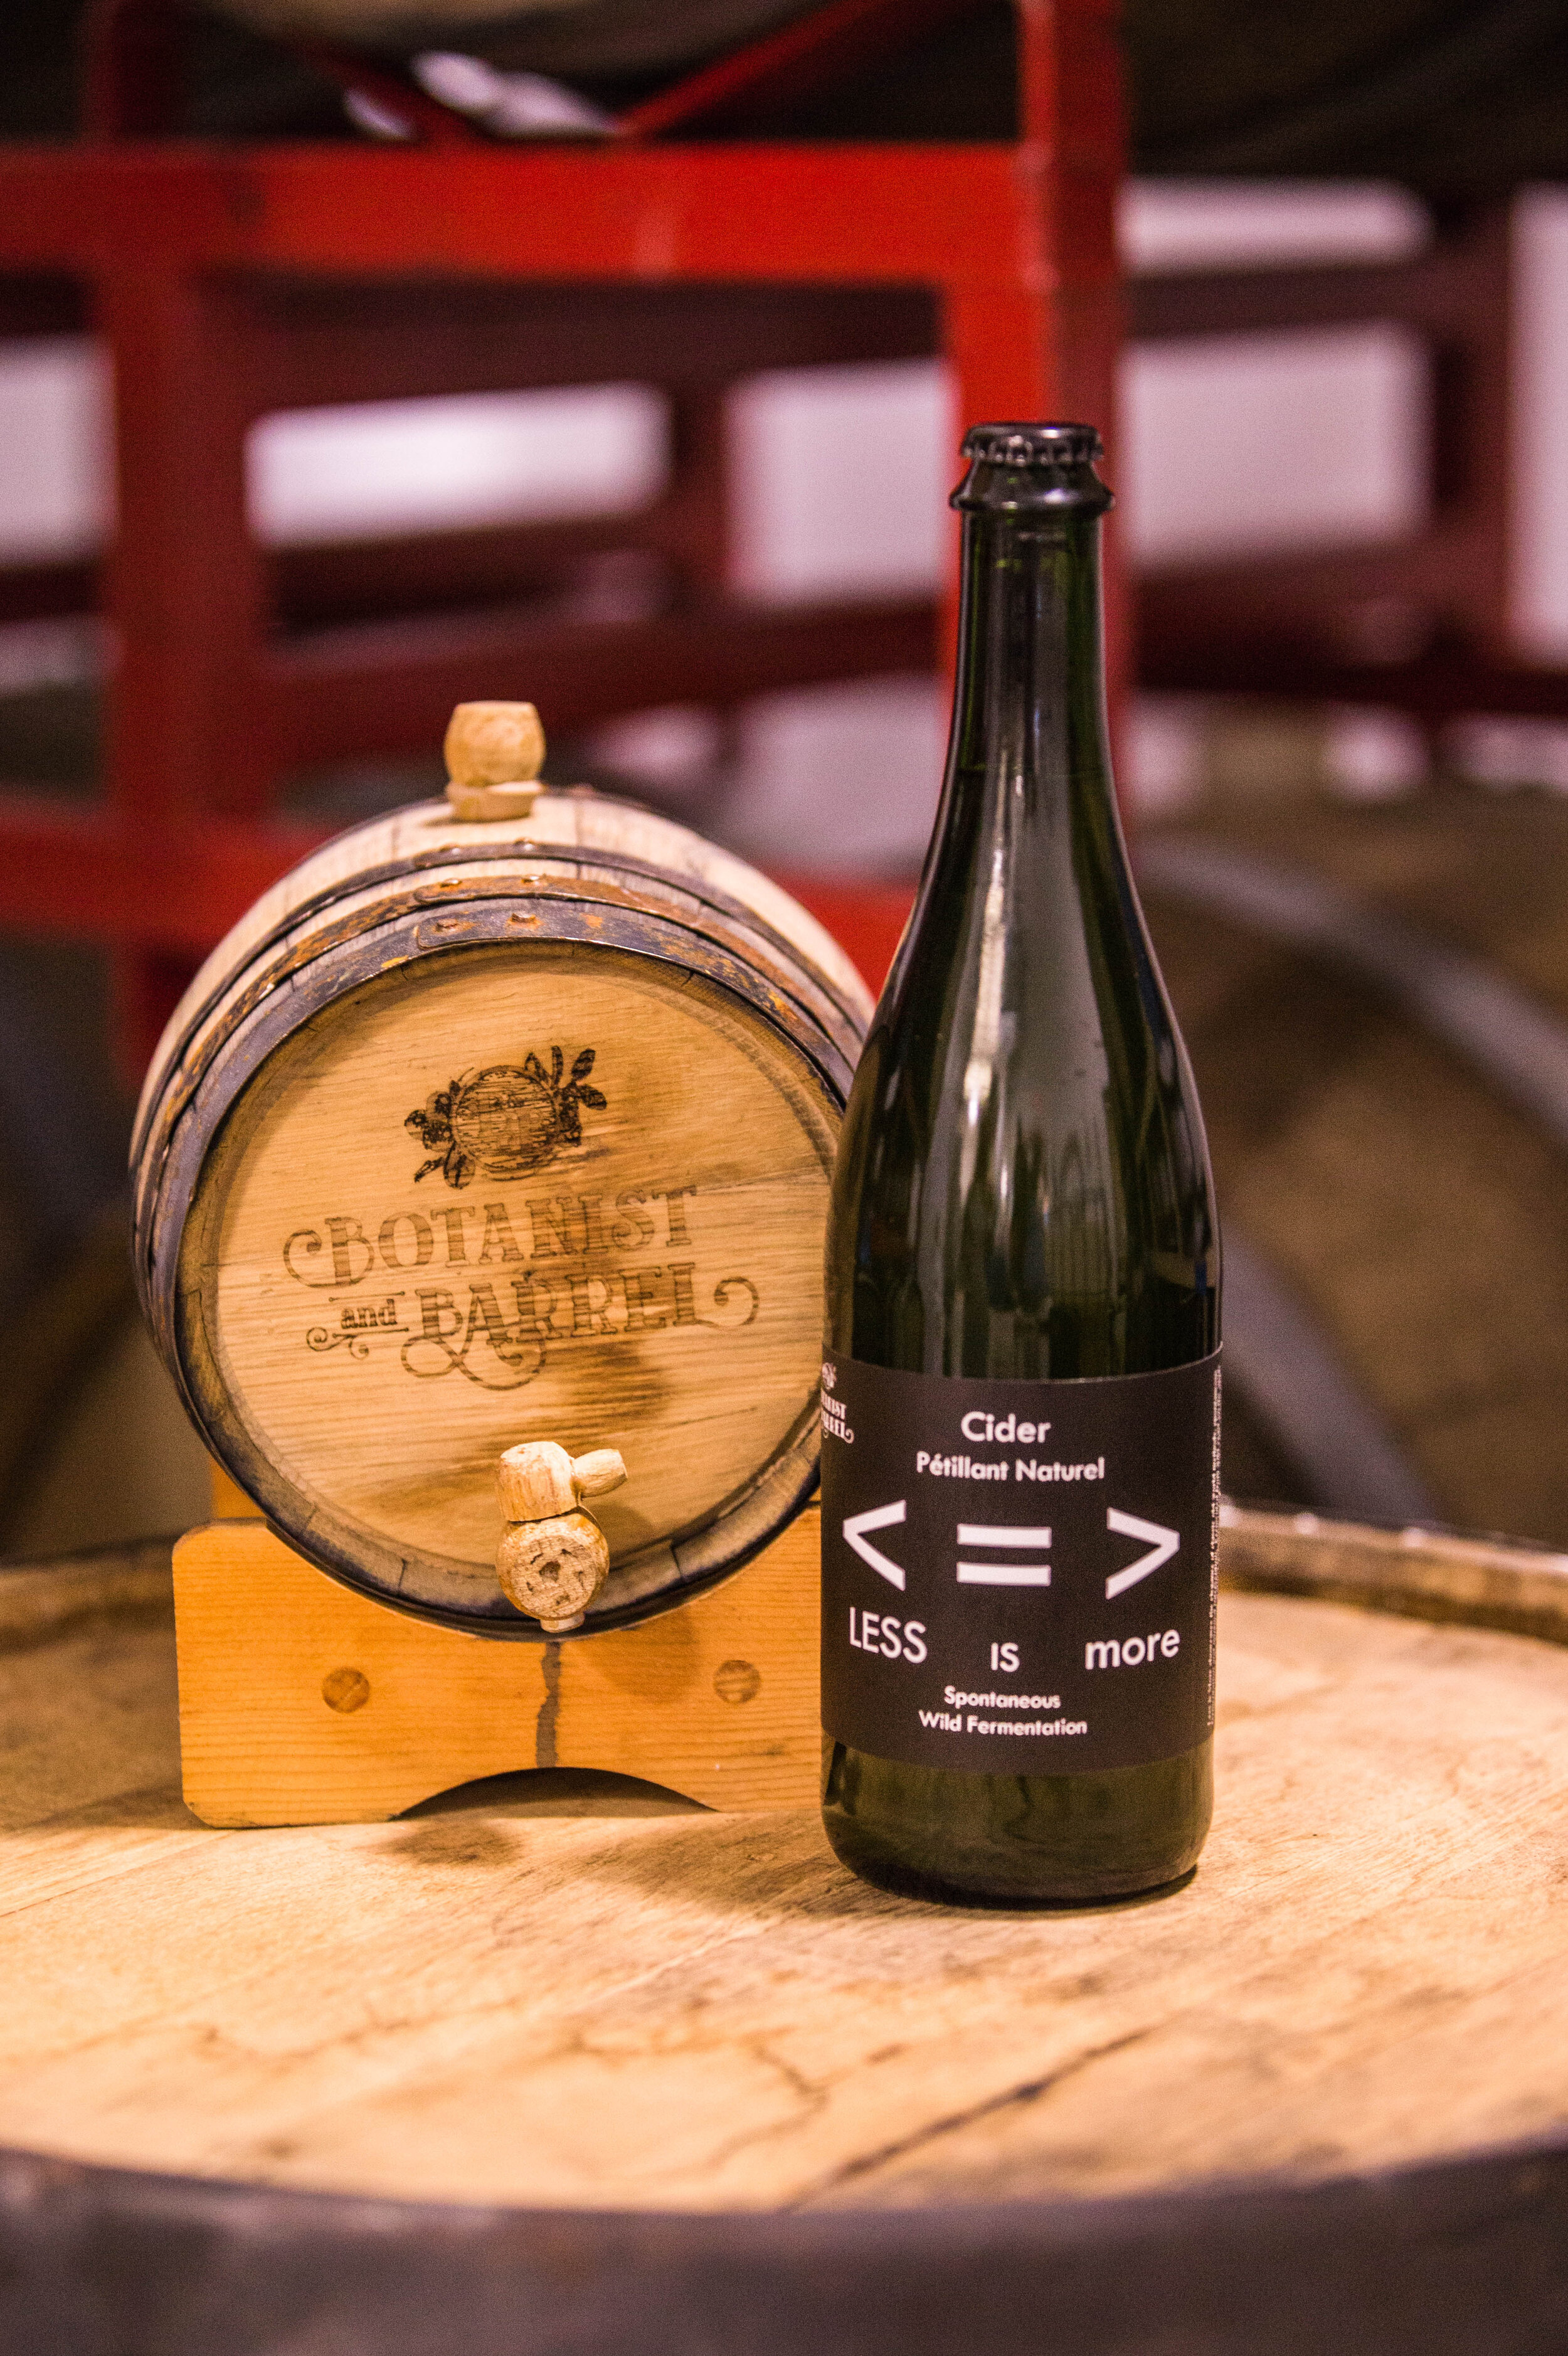 Less is More Pet Nat Cider - Spontaneous fermentation creates a cider with a touch of sweetness, sour, funk and light bubbles. A true classic.